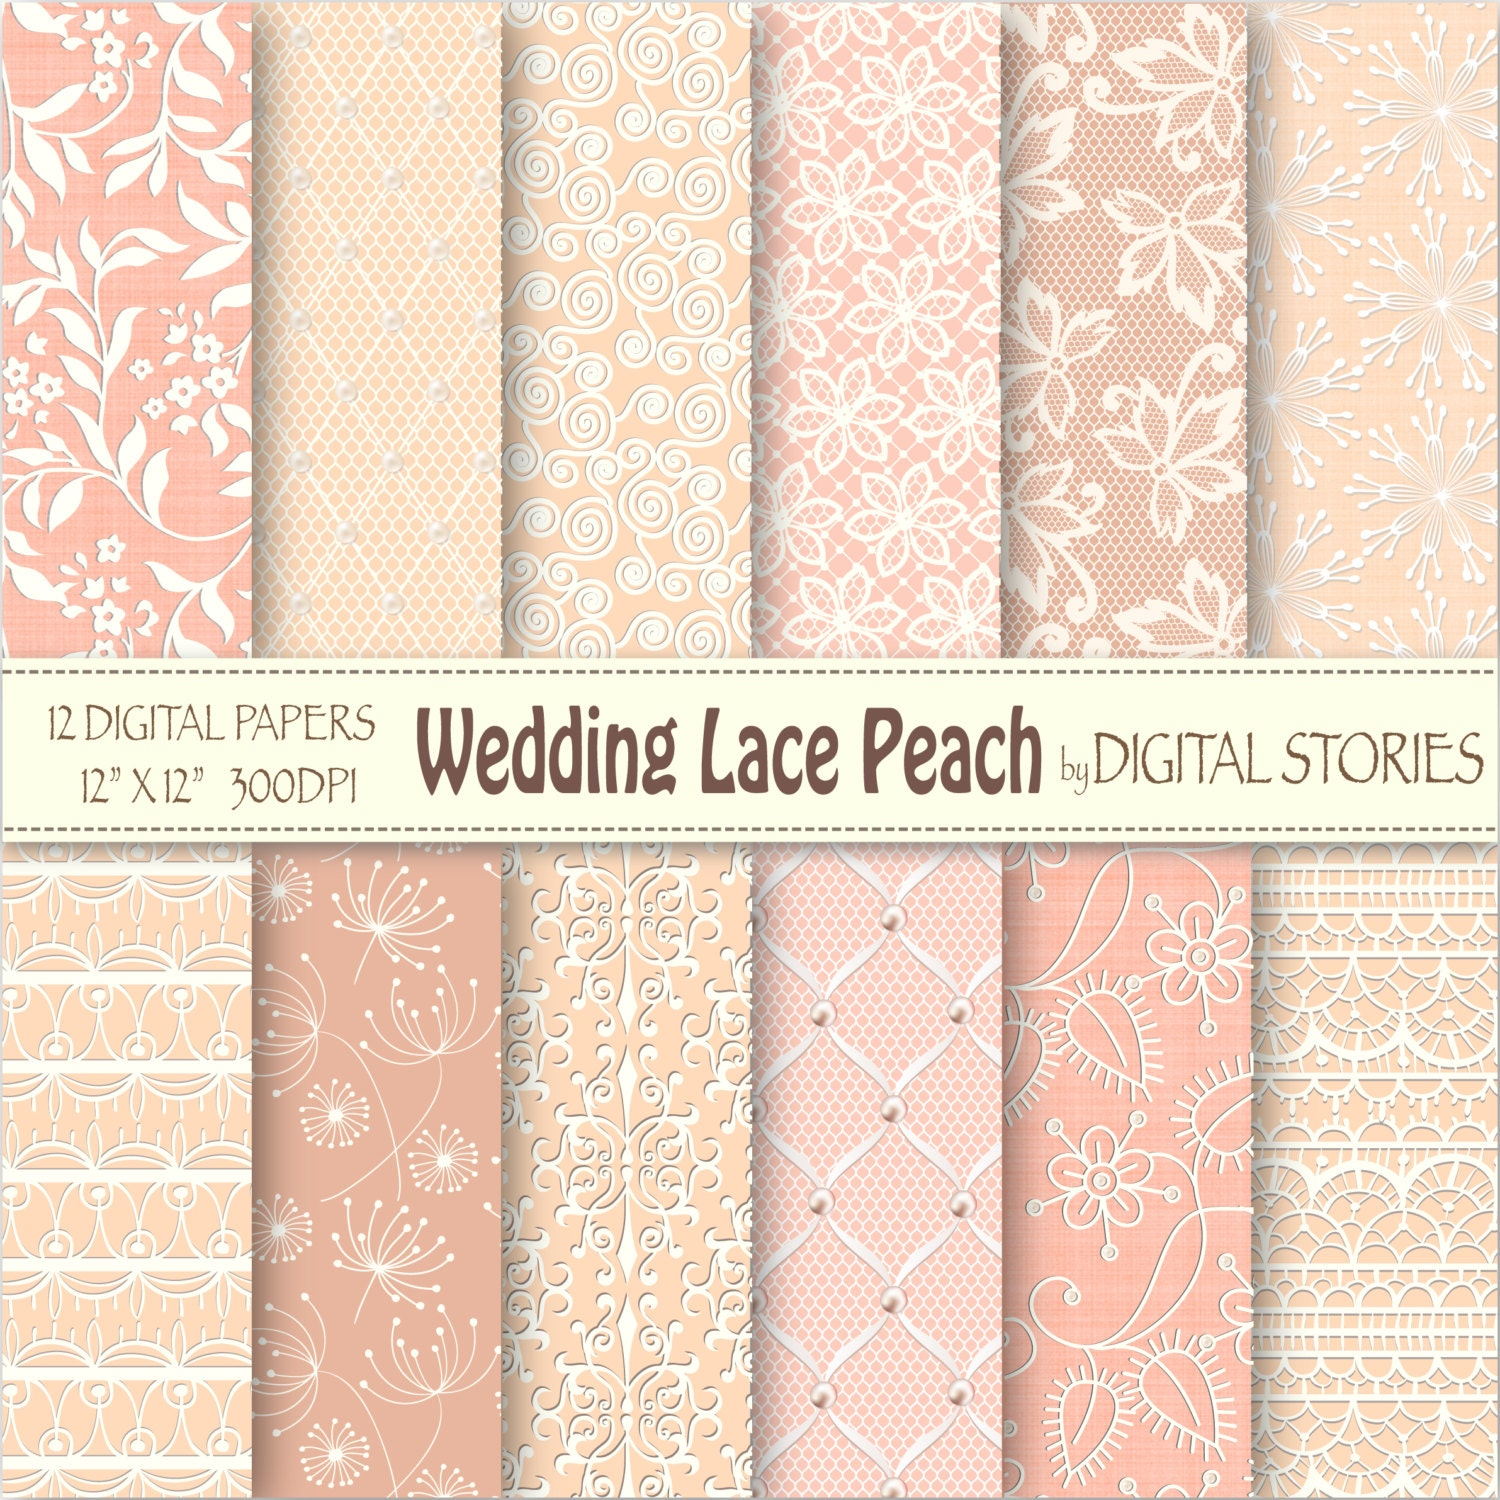 Scrapbook paper lace - Wedding Lace Digital Paper Wedding Lace Peach With Peach Wedding Bridal Patterns For Scrapbooking Invites Cards